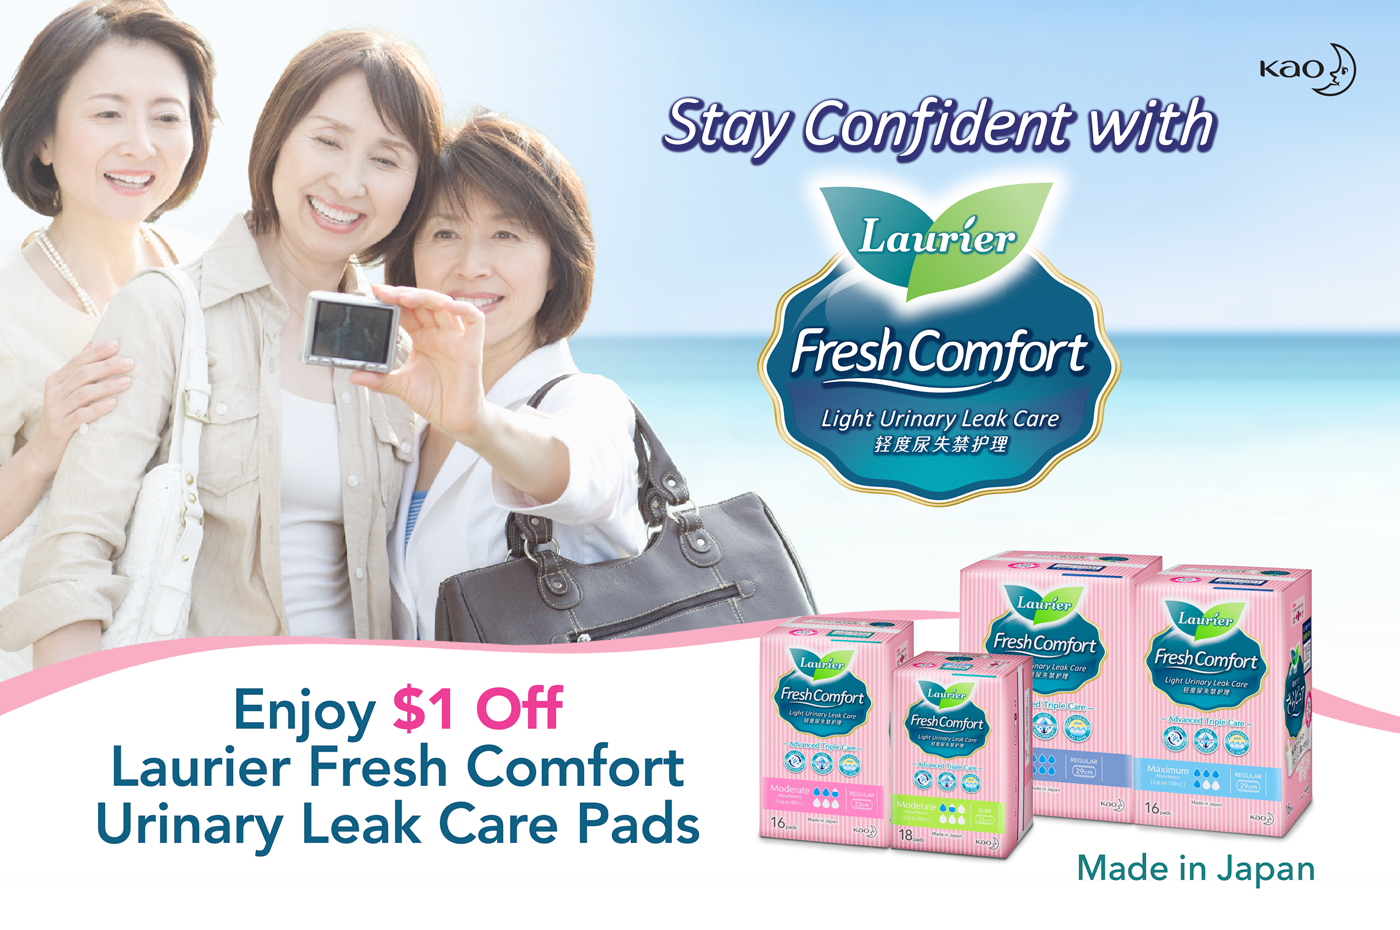 Enjoy $1 off Laurier Fresh Comfort Light Urinary Leak Care Pads